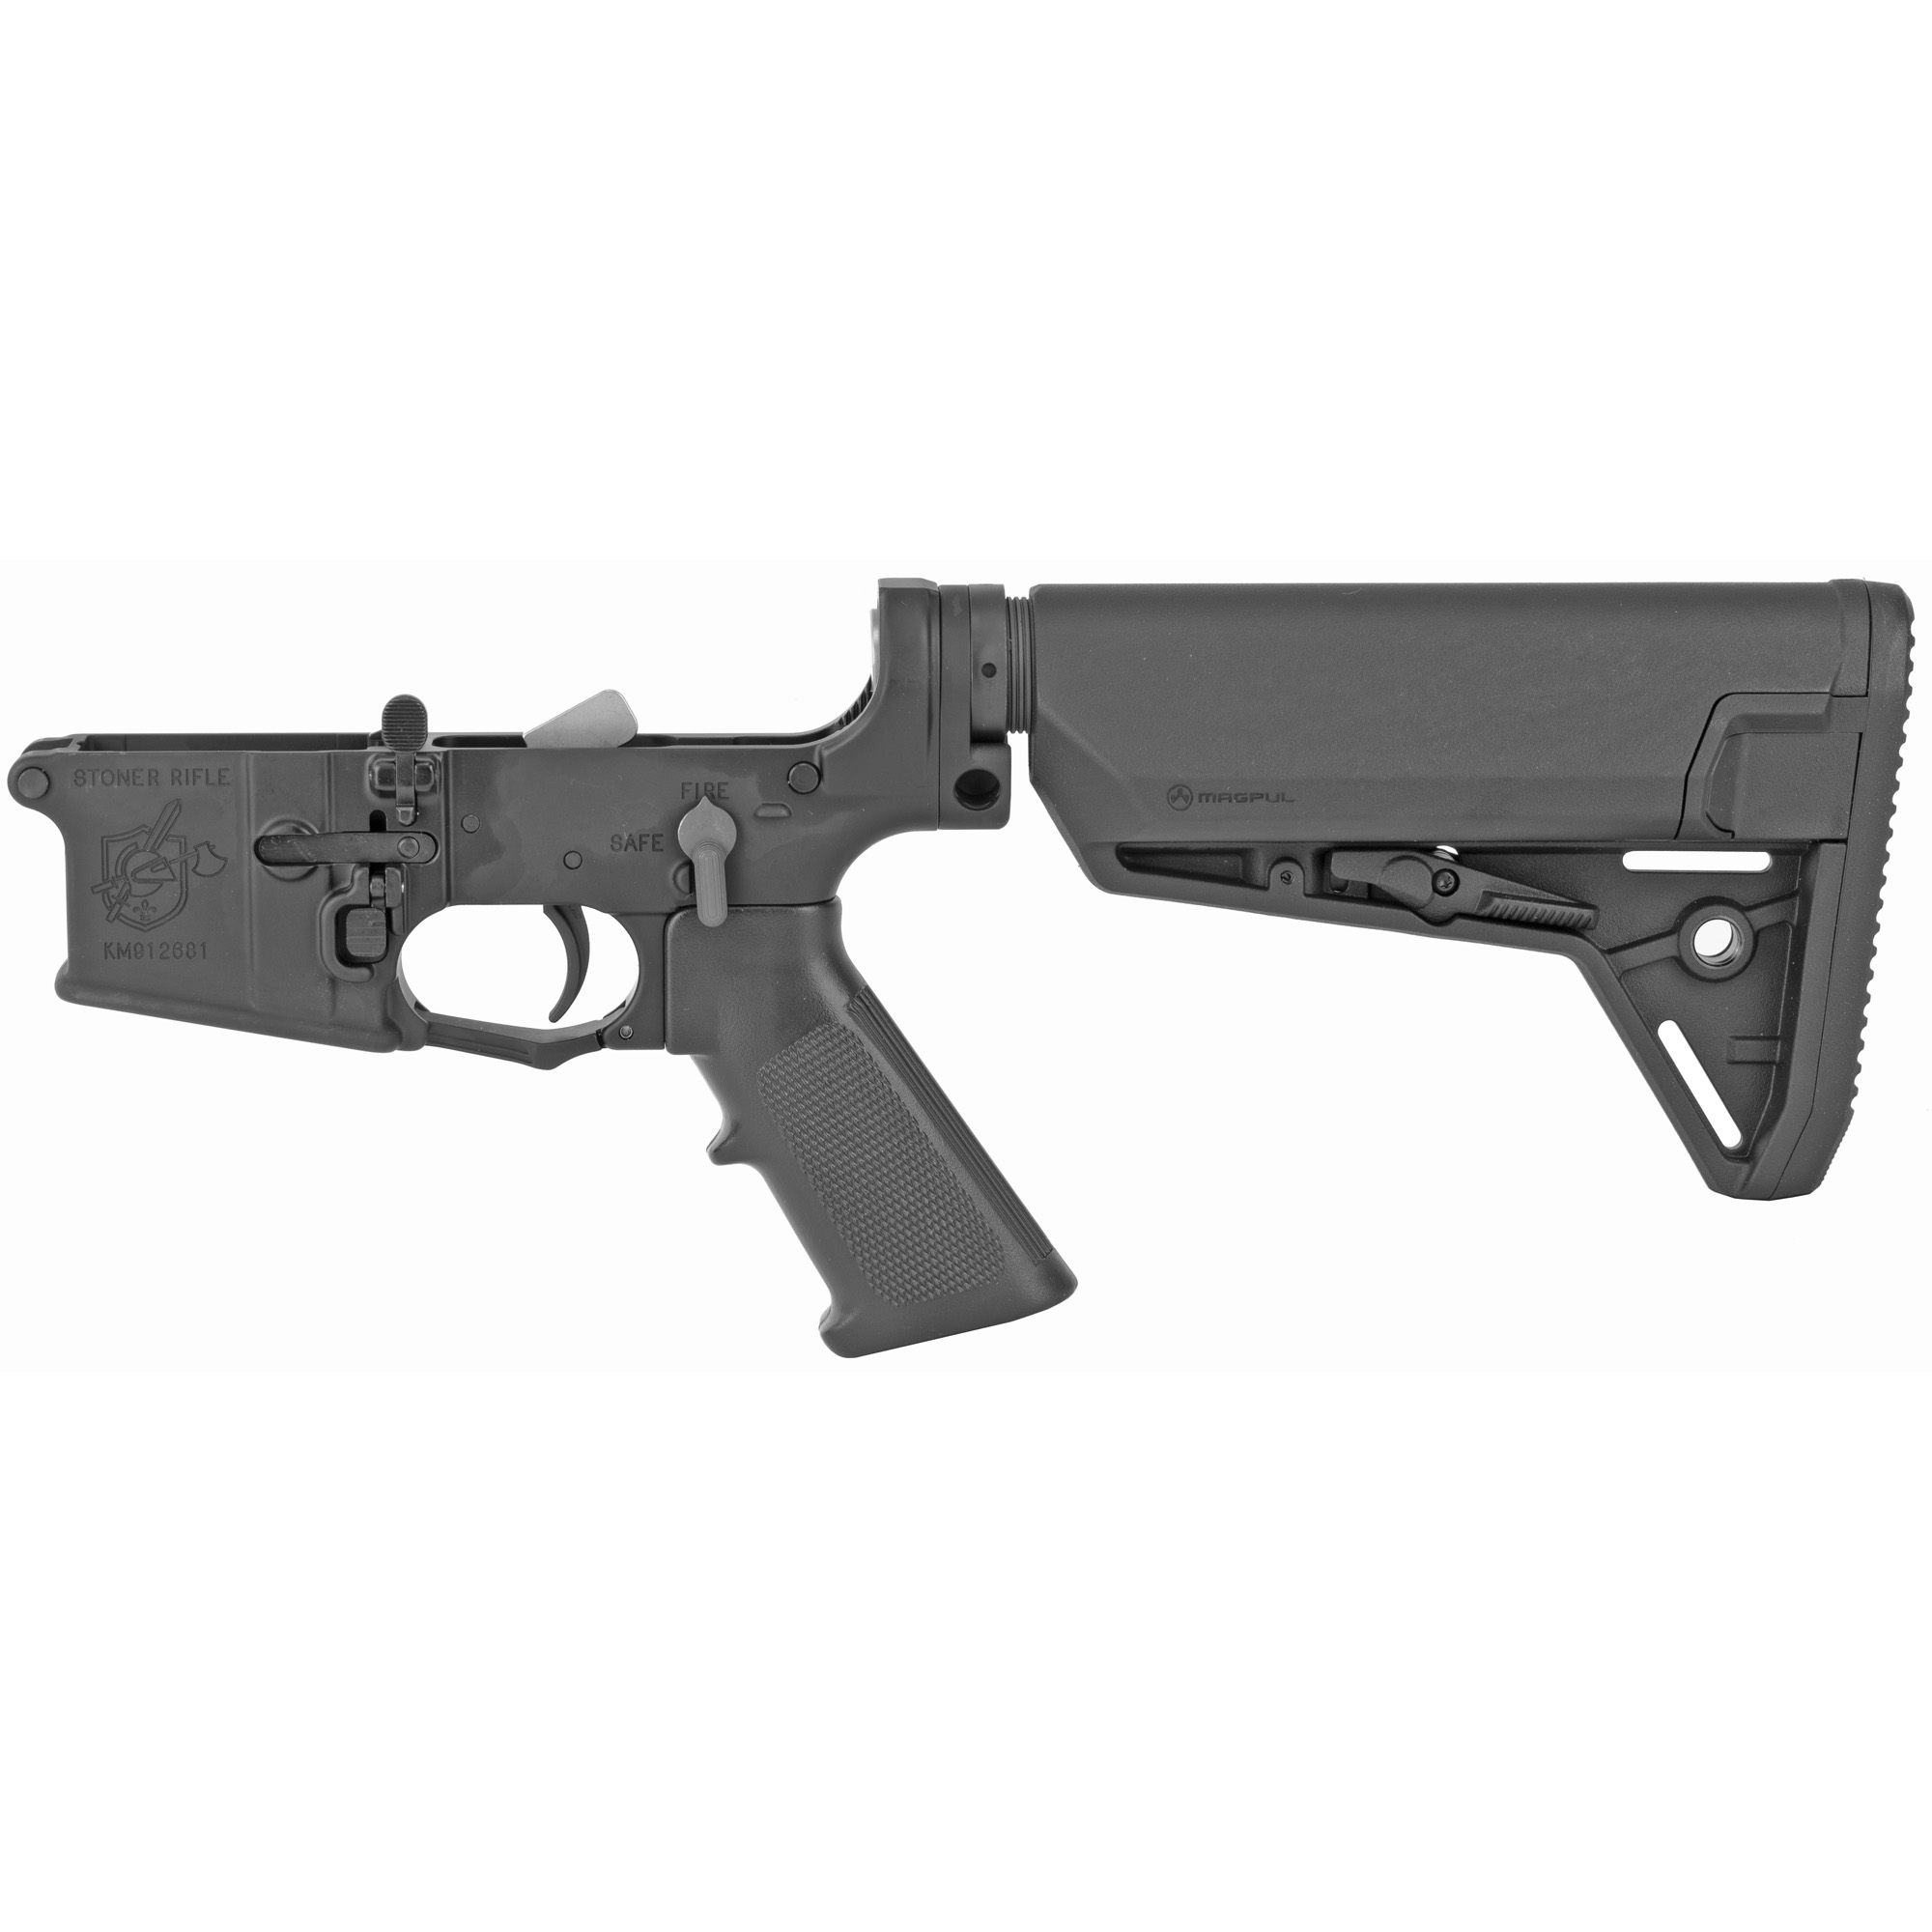 The Knight's Armament SR-15 IWS Complete Lower Receiver comes with with a Magpul stock and six-position buffer tube.